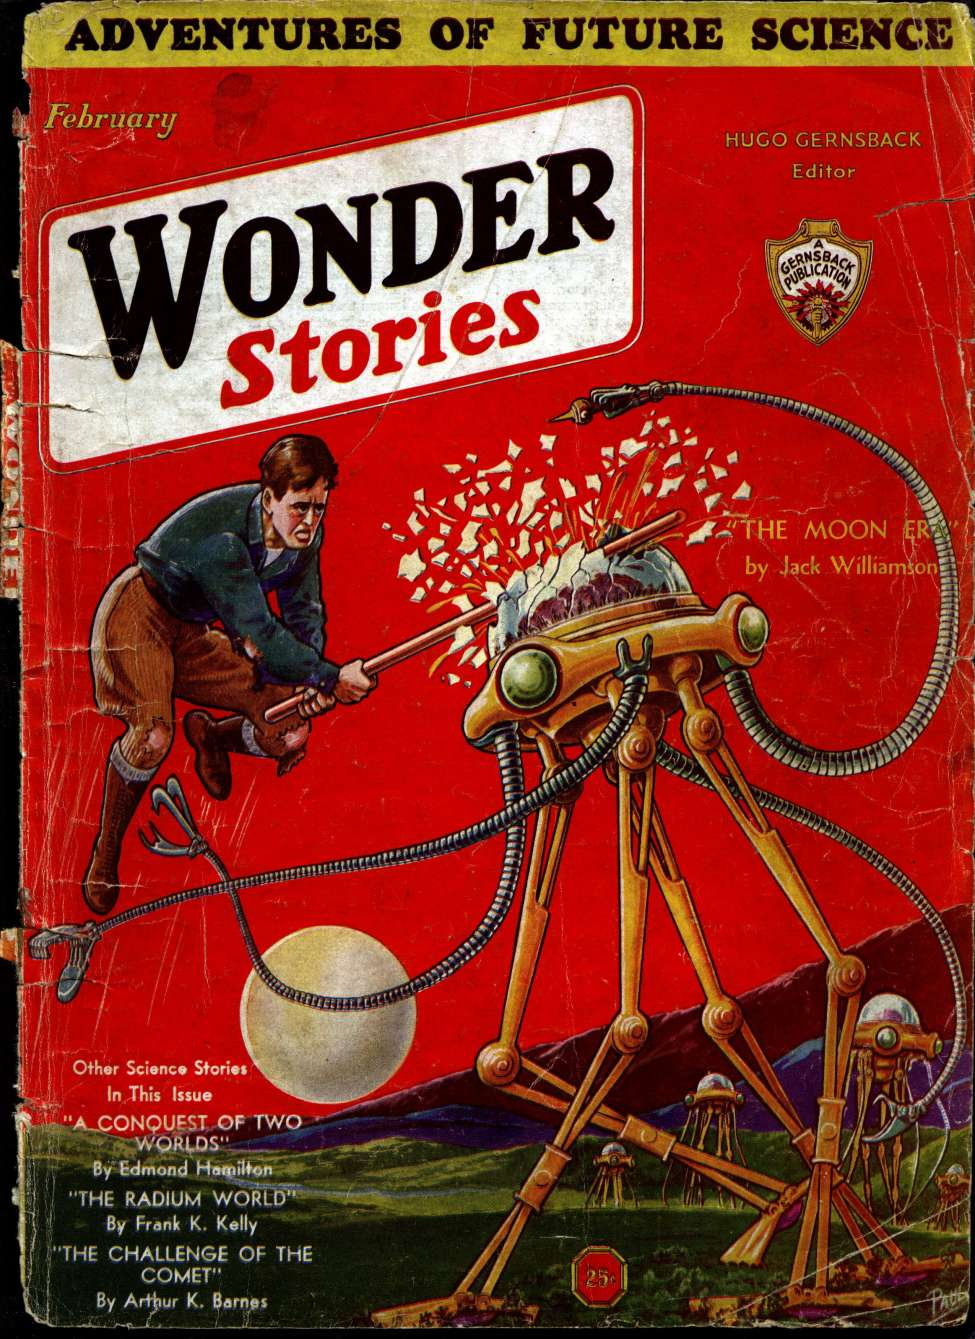 Comic Book Cover For Wonder Stories v3 09 - The Moon Era - Jack Williamson